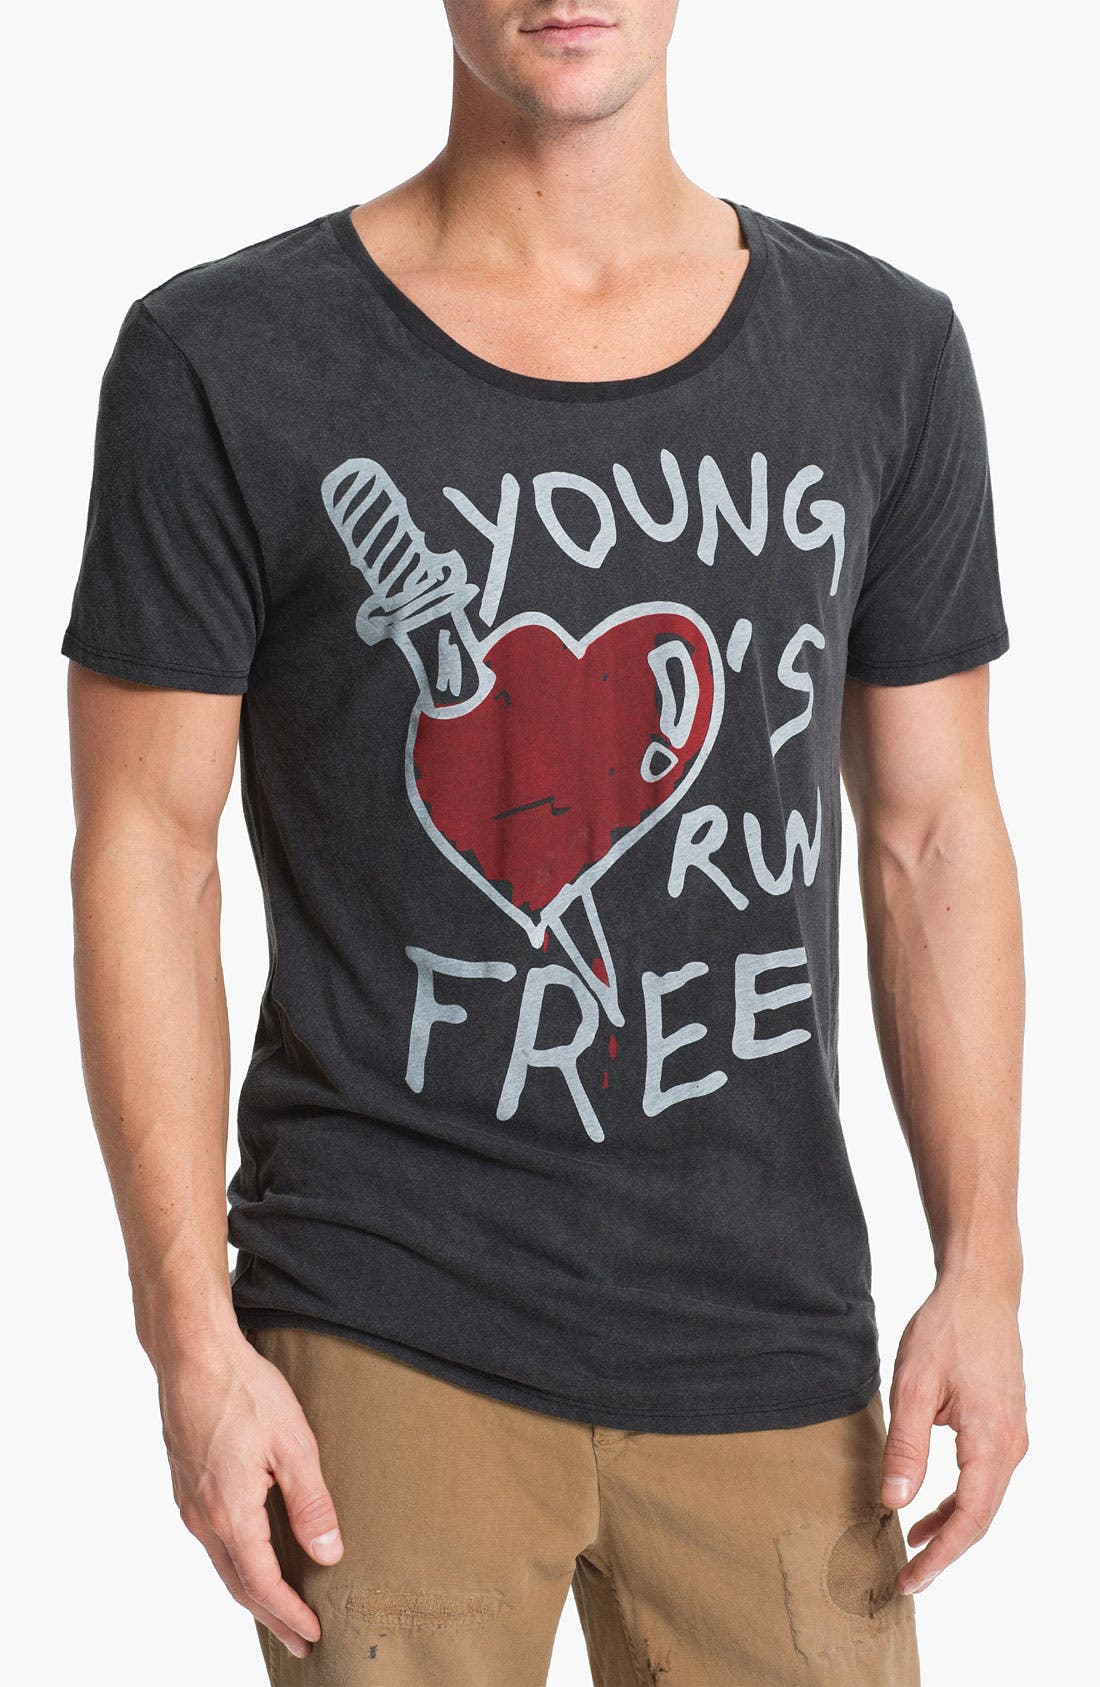 Alternate Image 1 Selected - Vanguard 'Young Hearts Run Free' Graphic T-Shirt